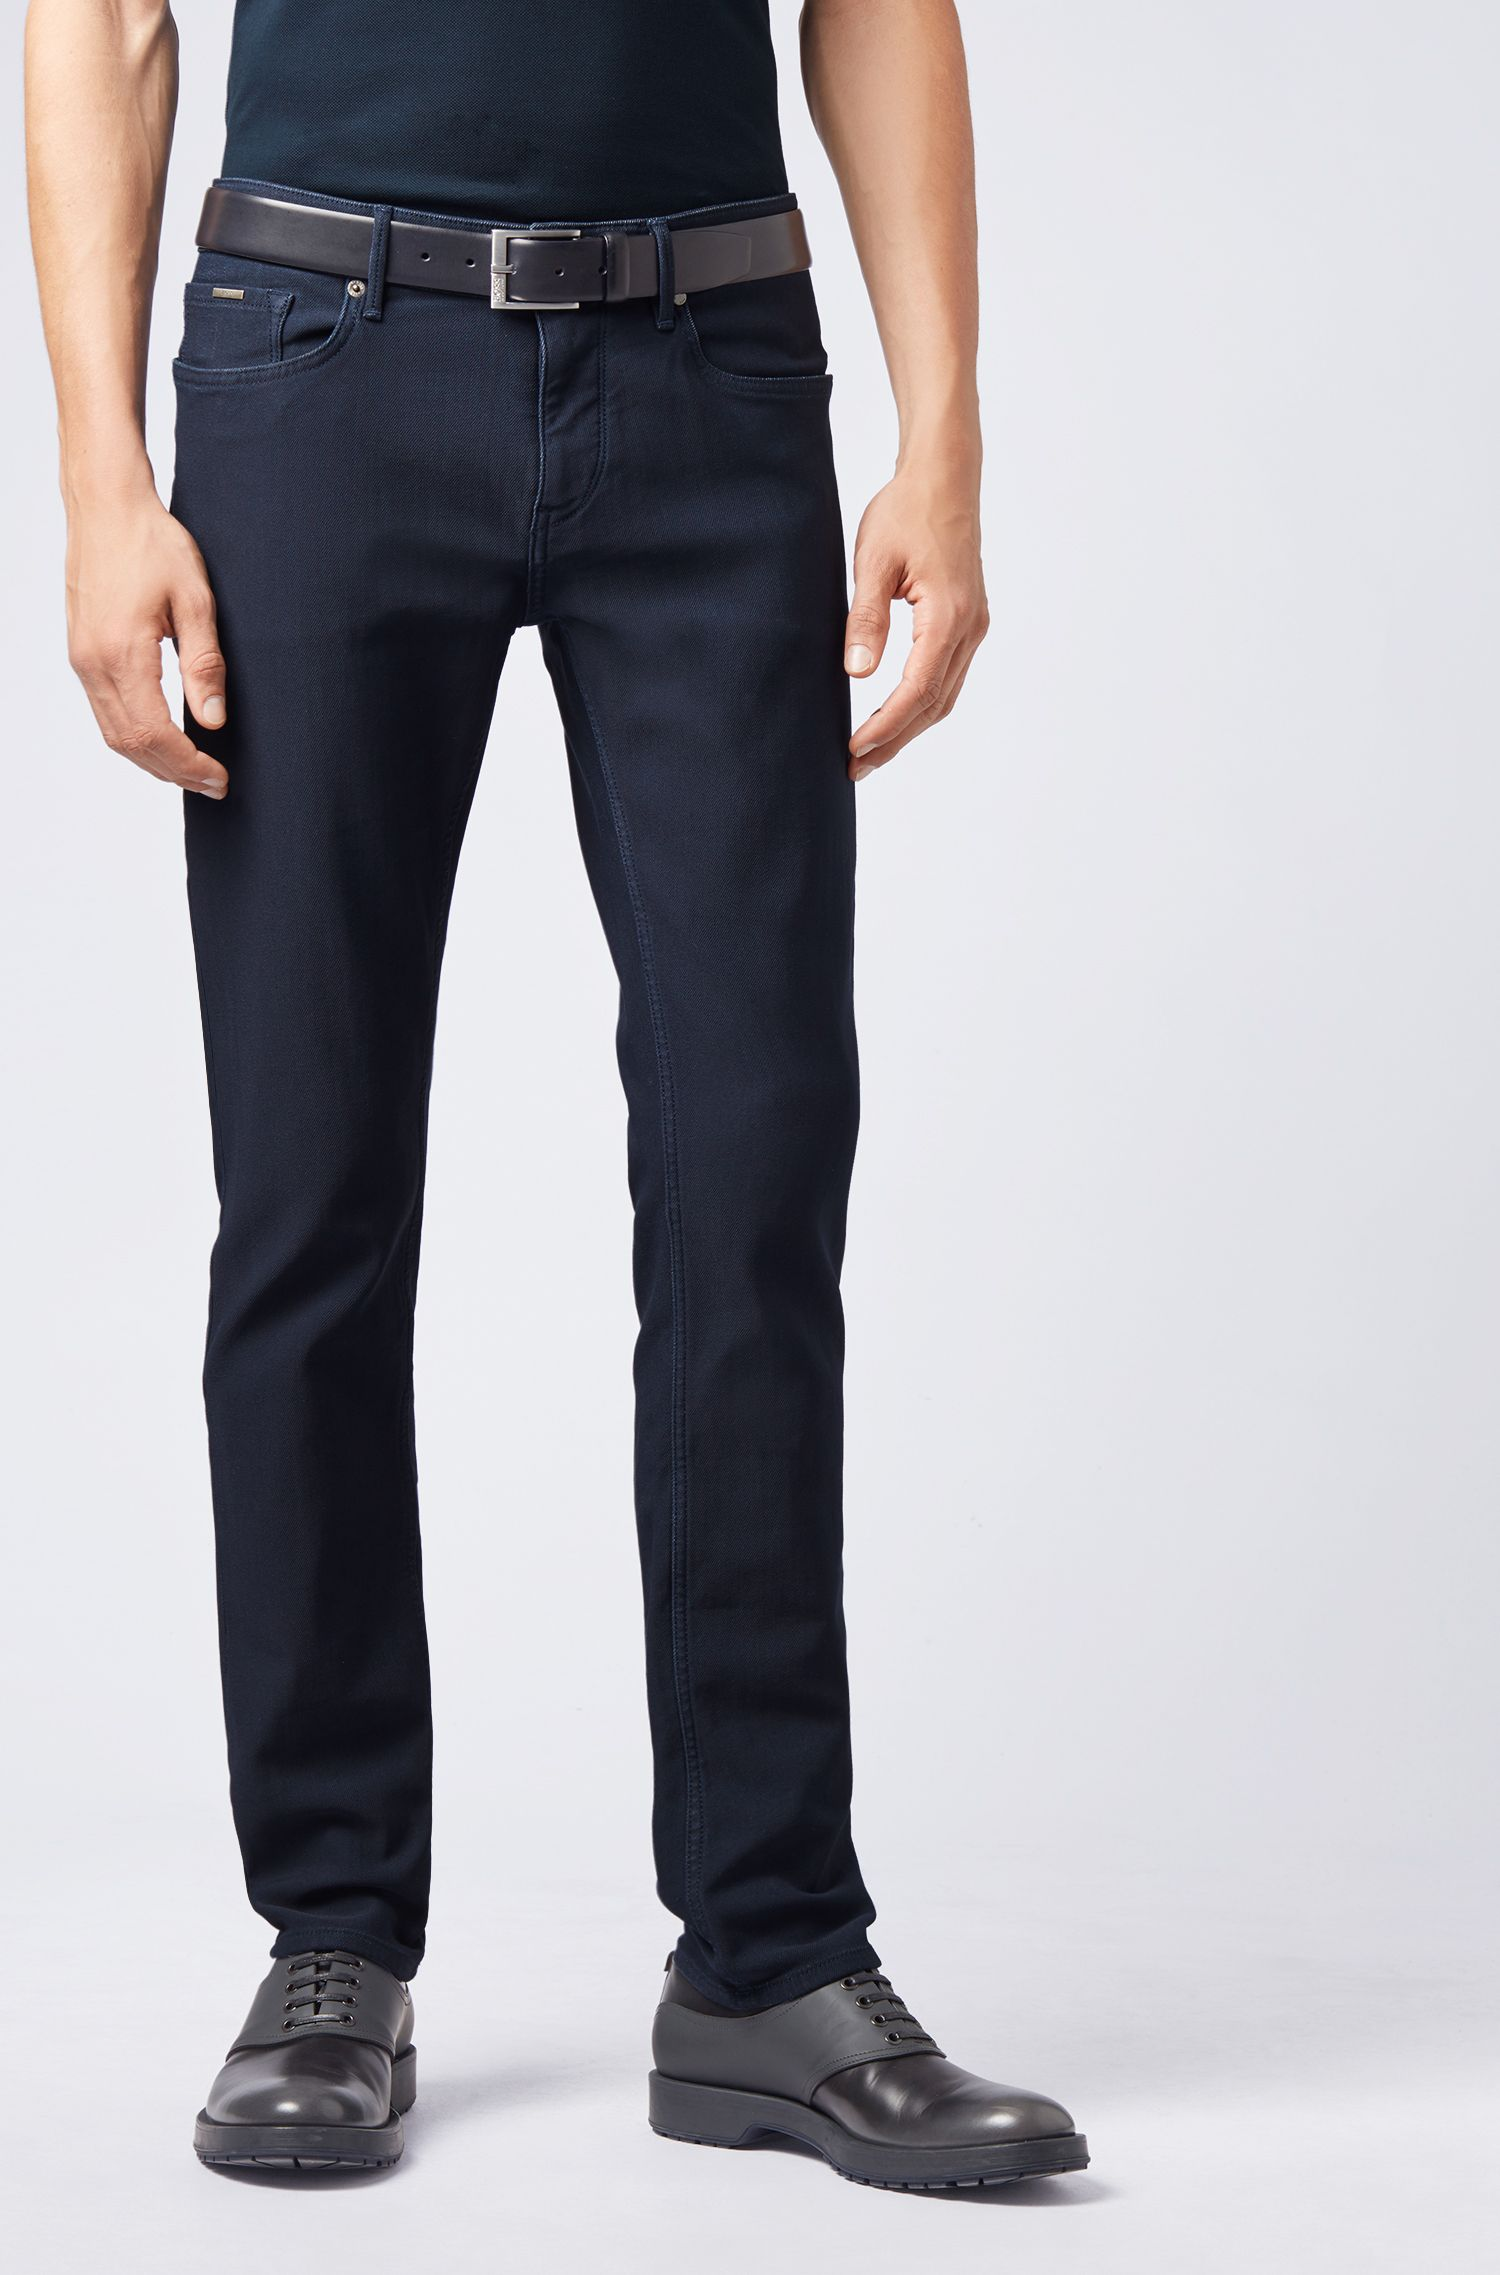 Extra-slim-fit jeans in Italian denim jersey, Dark Blue